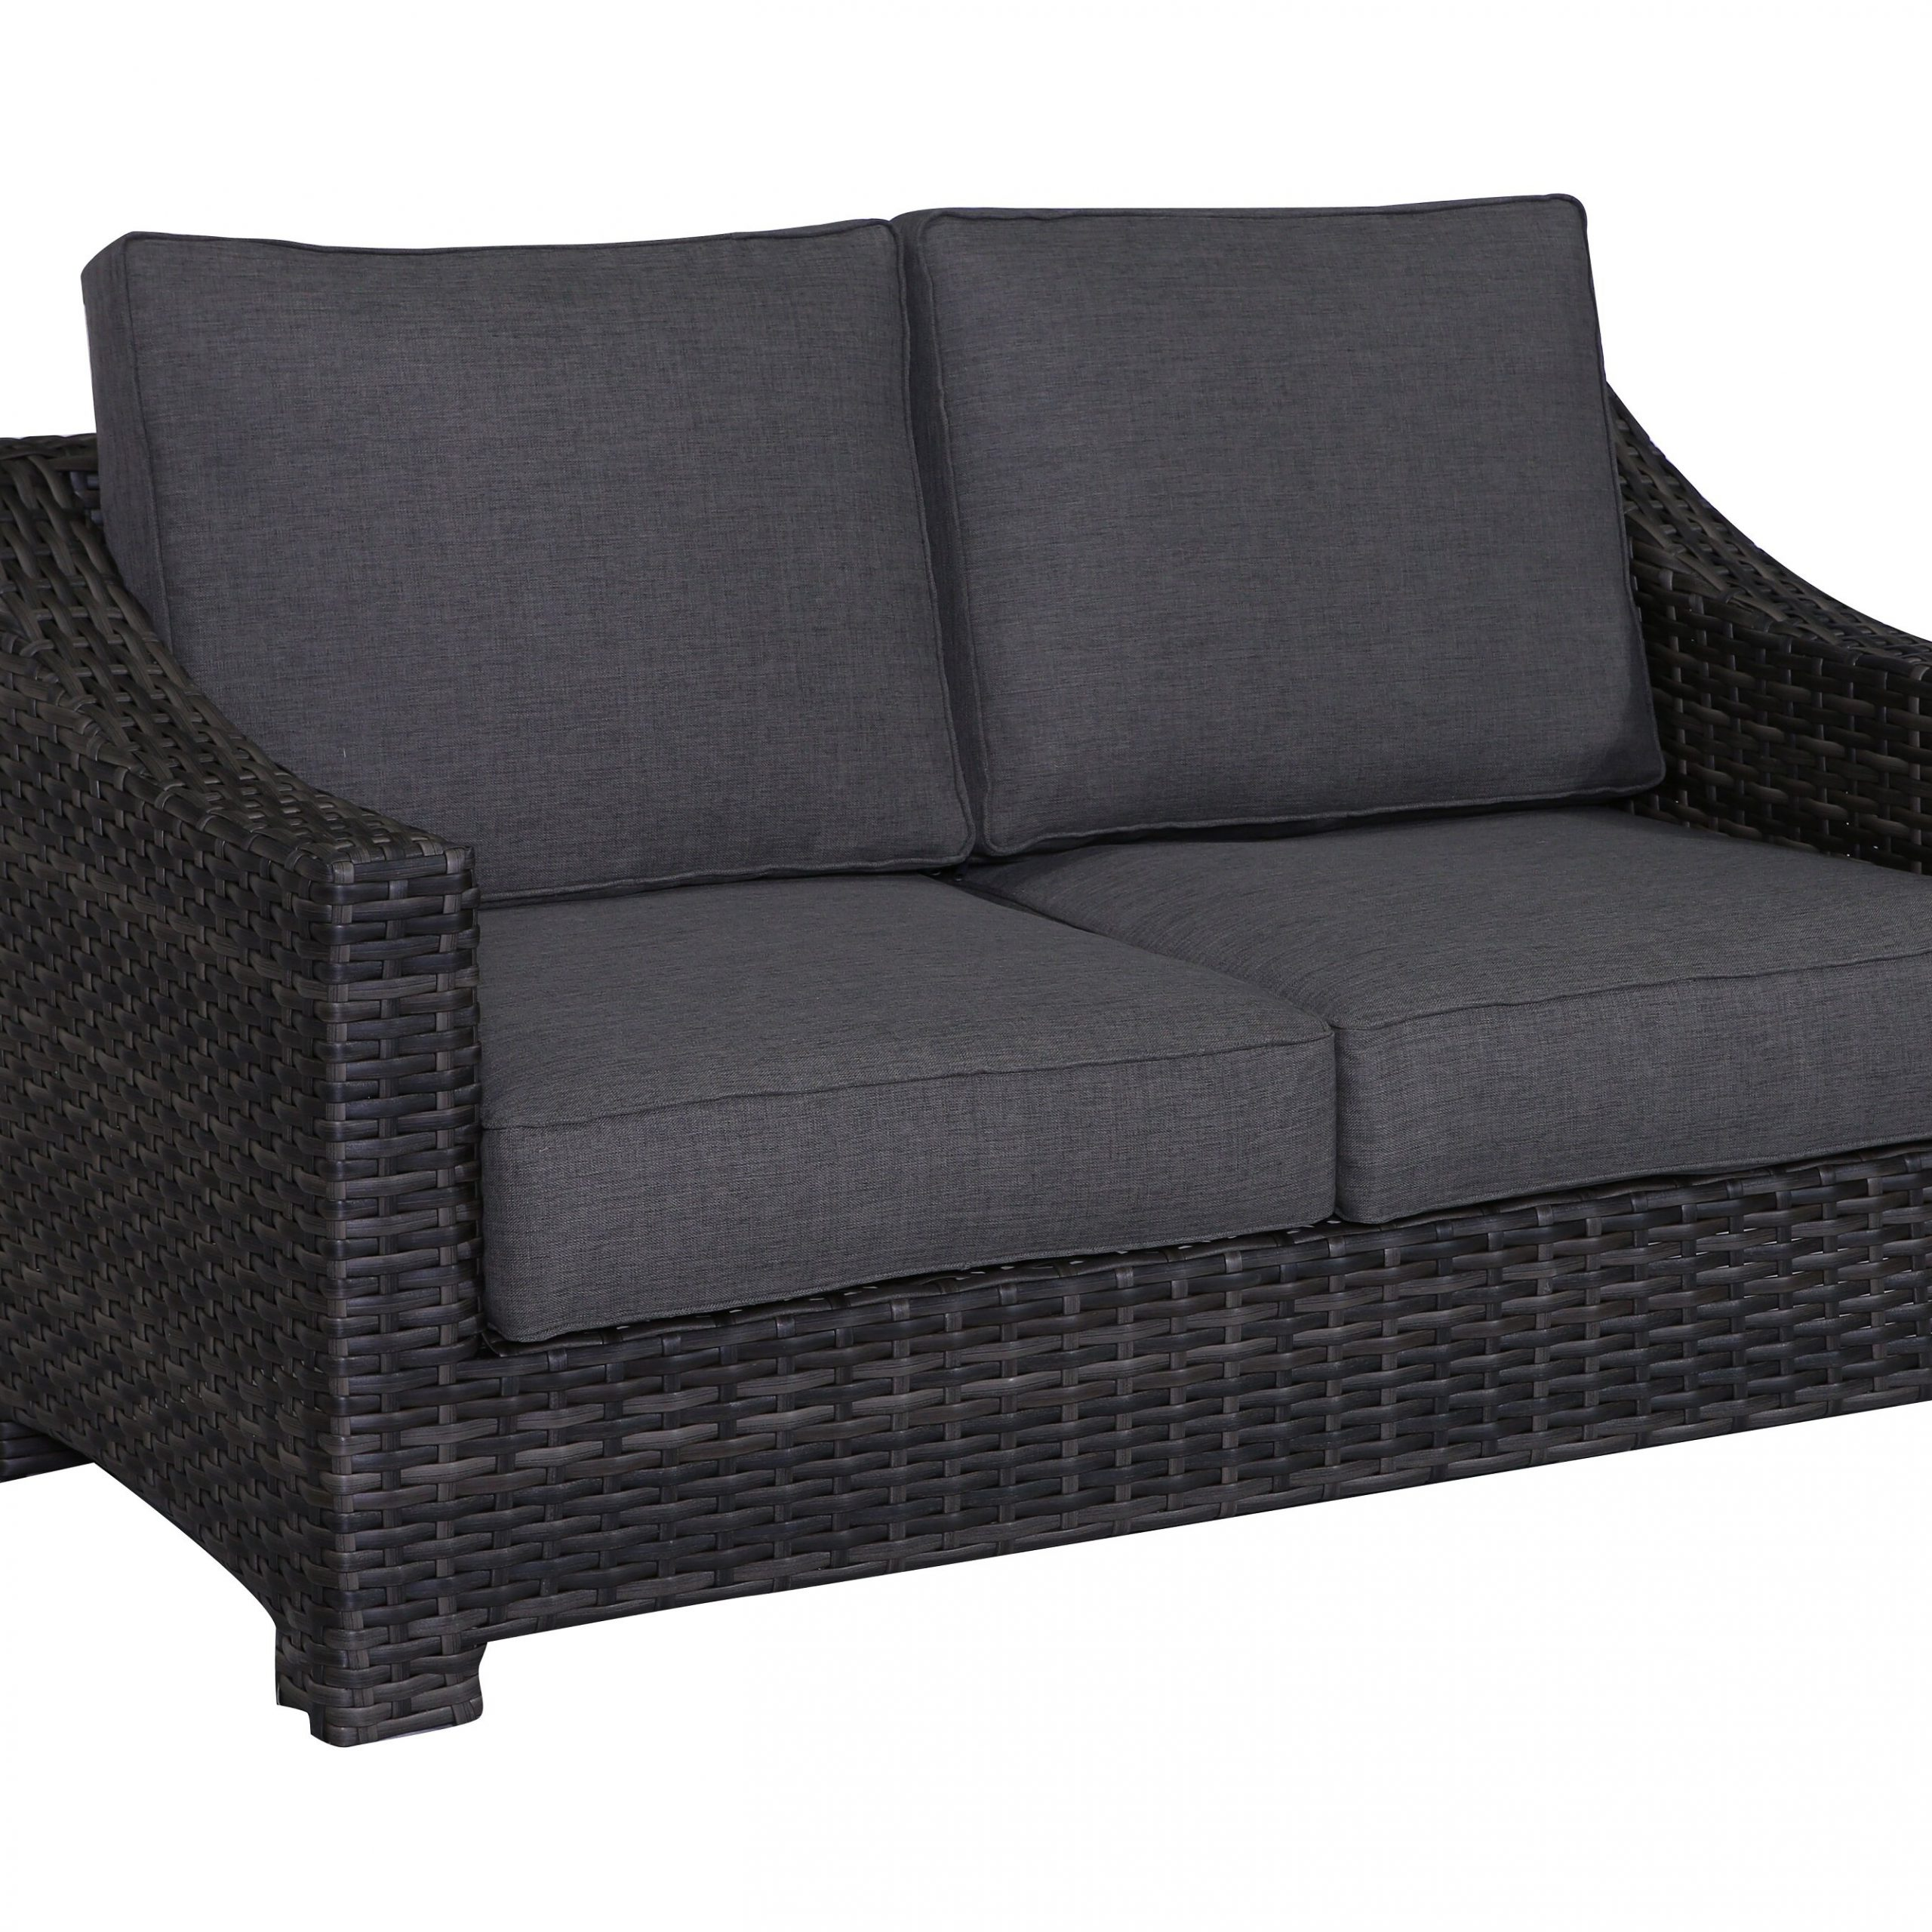 Fashionable Donley Loveseat With Cushions For Oceanside Outdoor Wicker Loveseats With Cushions (View 4 of 25)